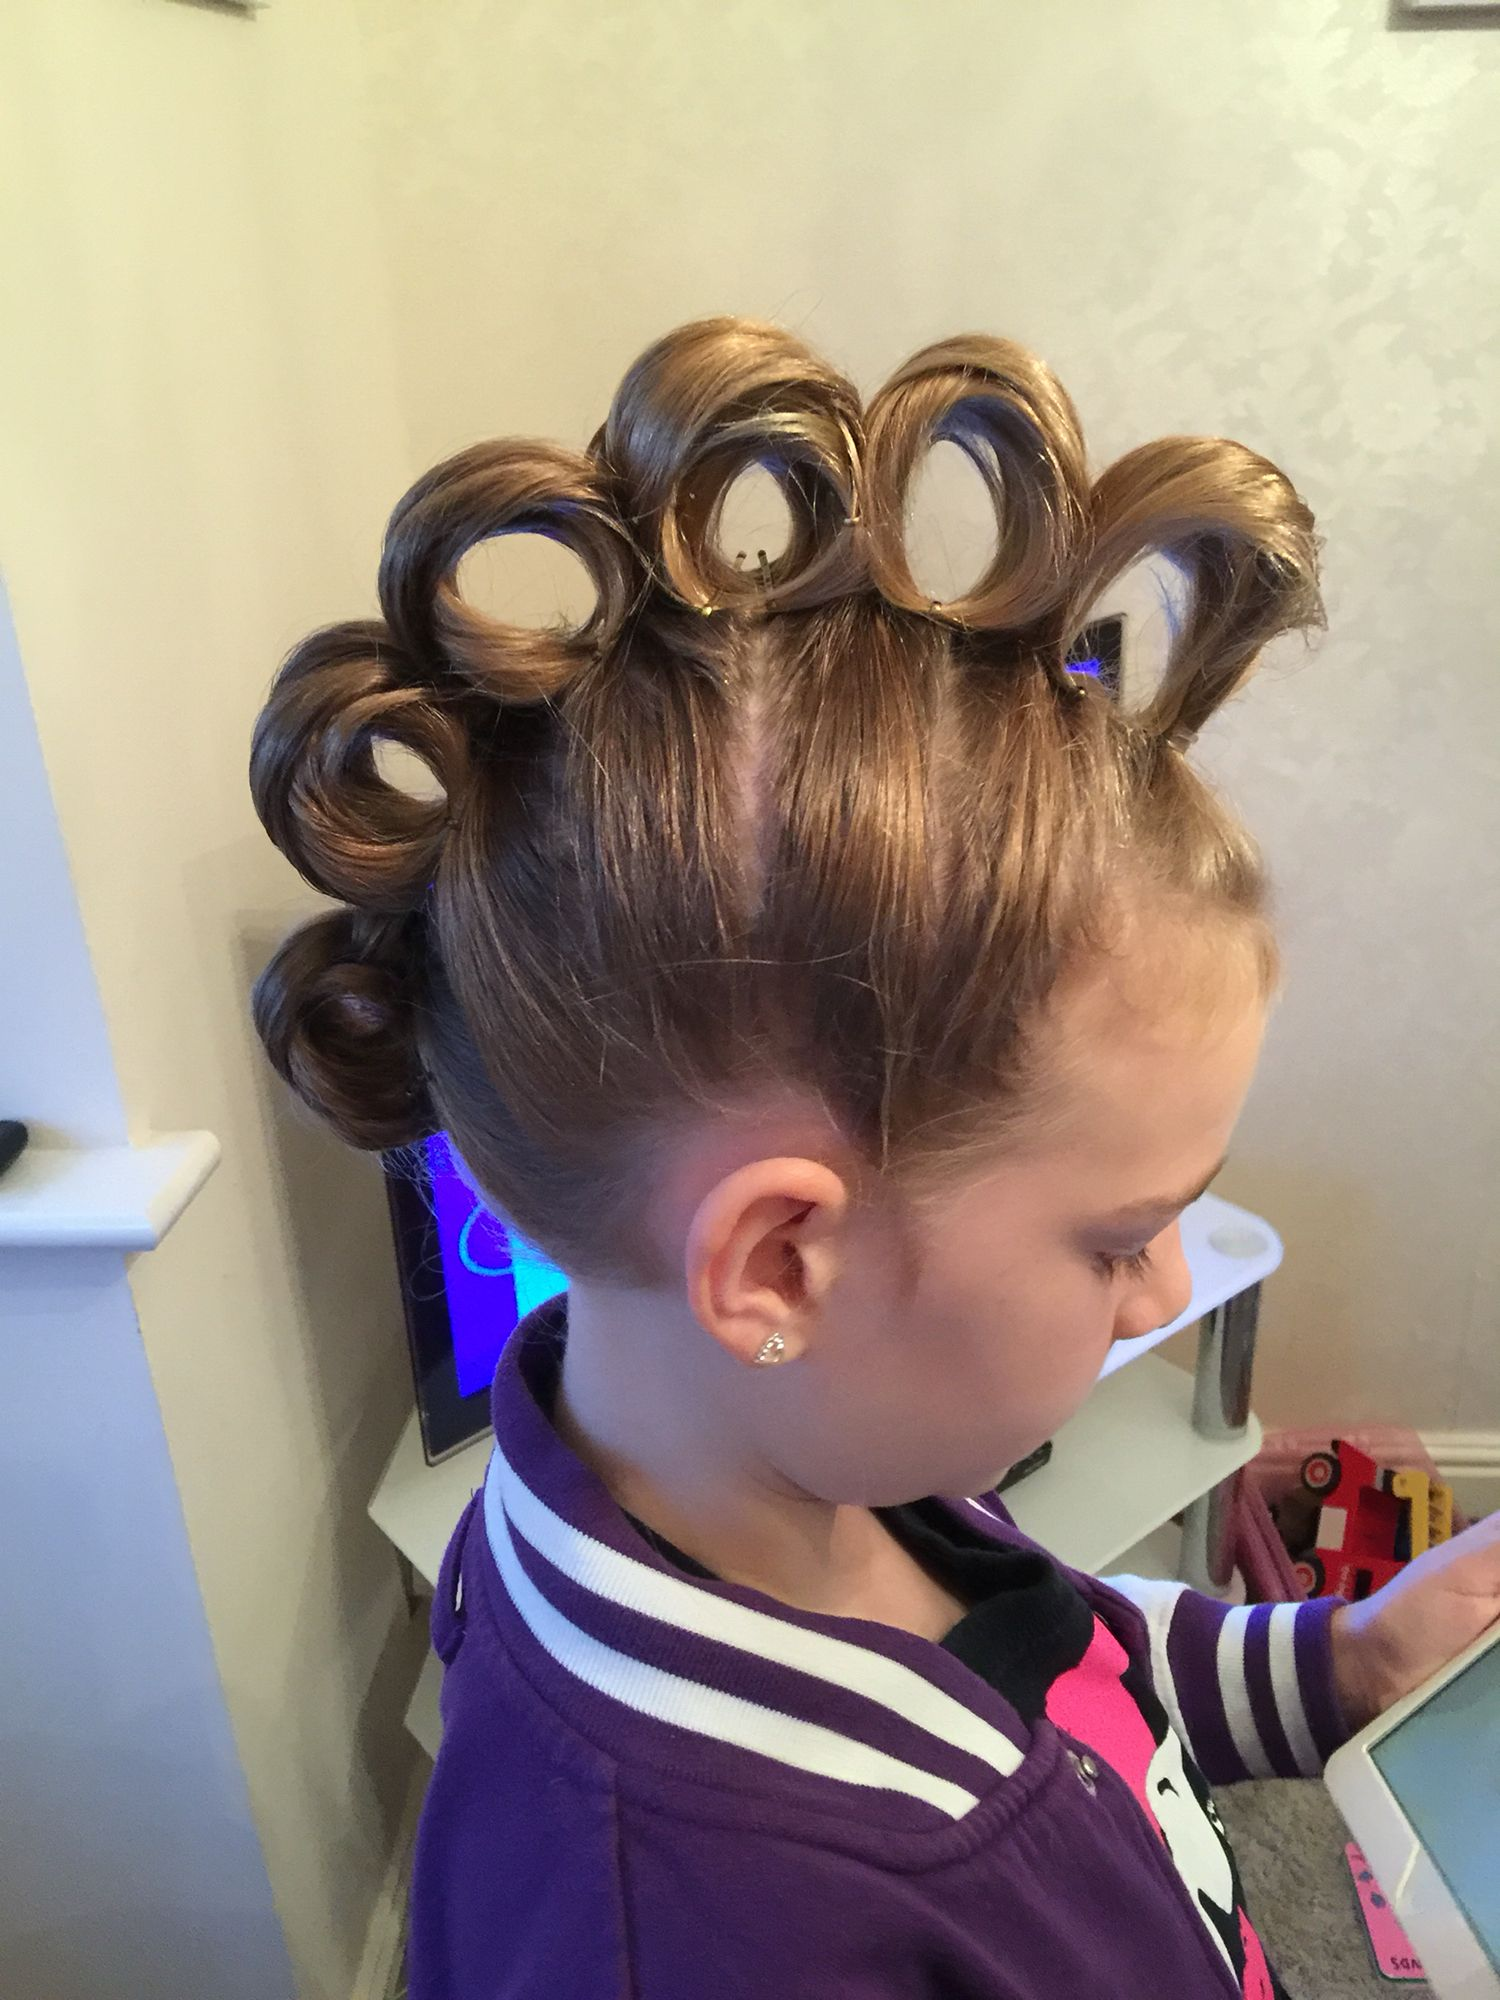 Rolling Mohawk for crazy hair day | hair | Pinterest ...